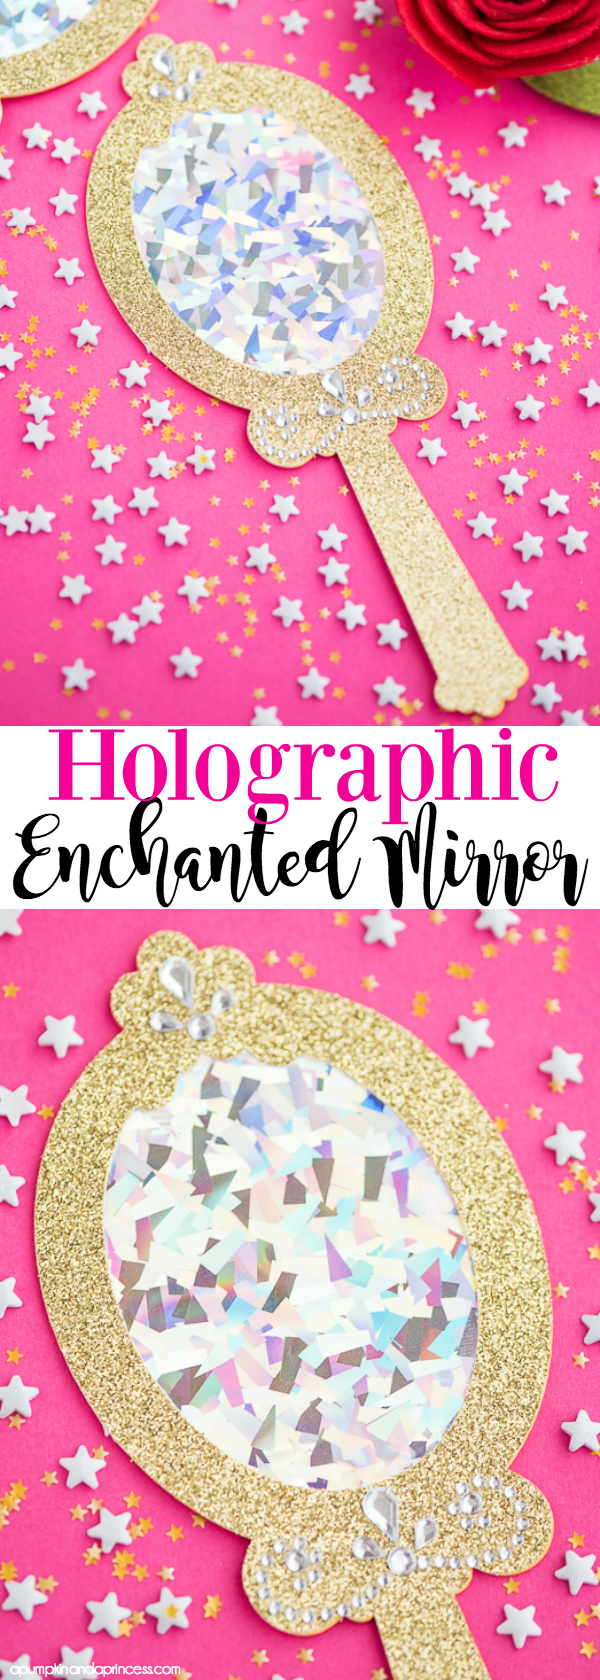 How to make holographic enchanted mirror party favors inspired by Beauty and the Beast